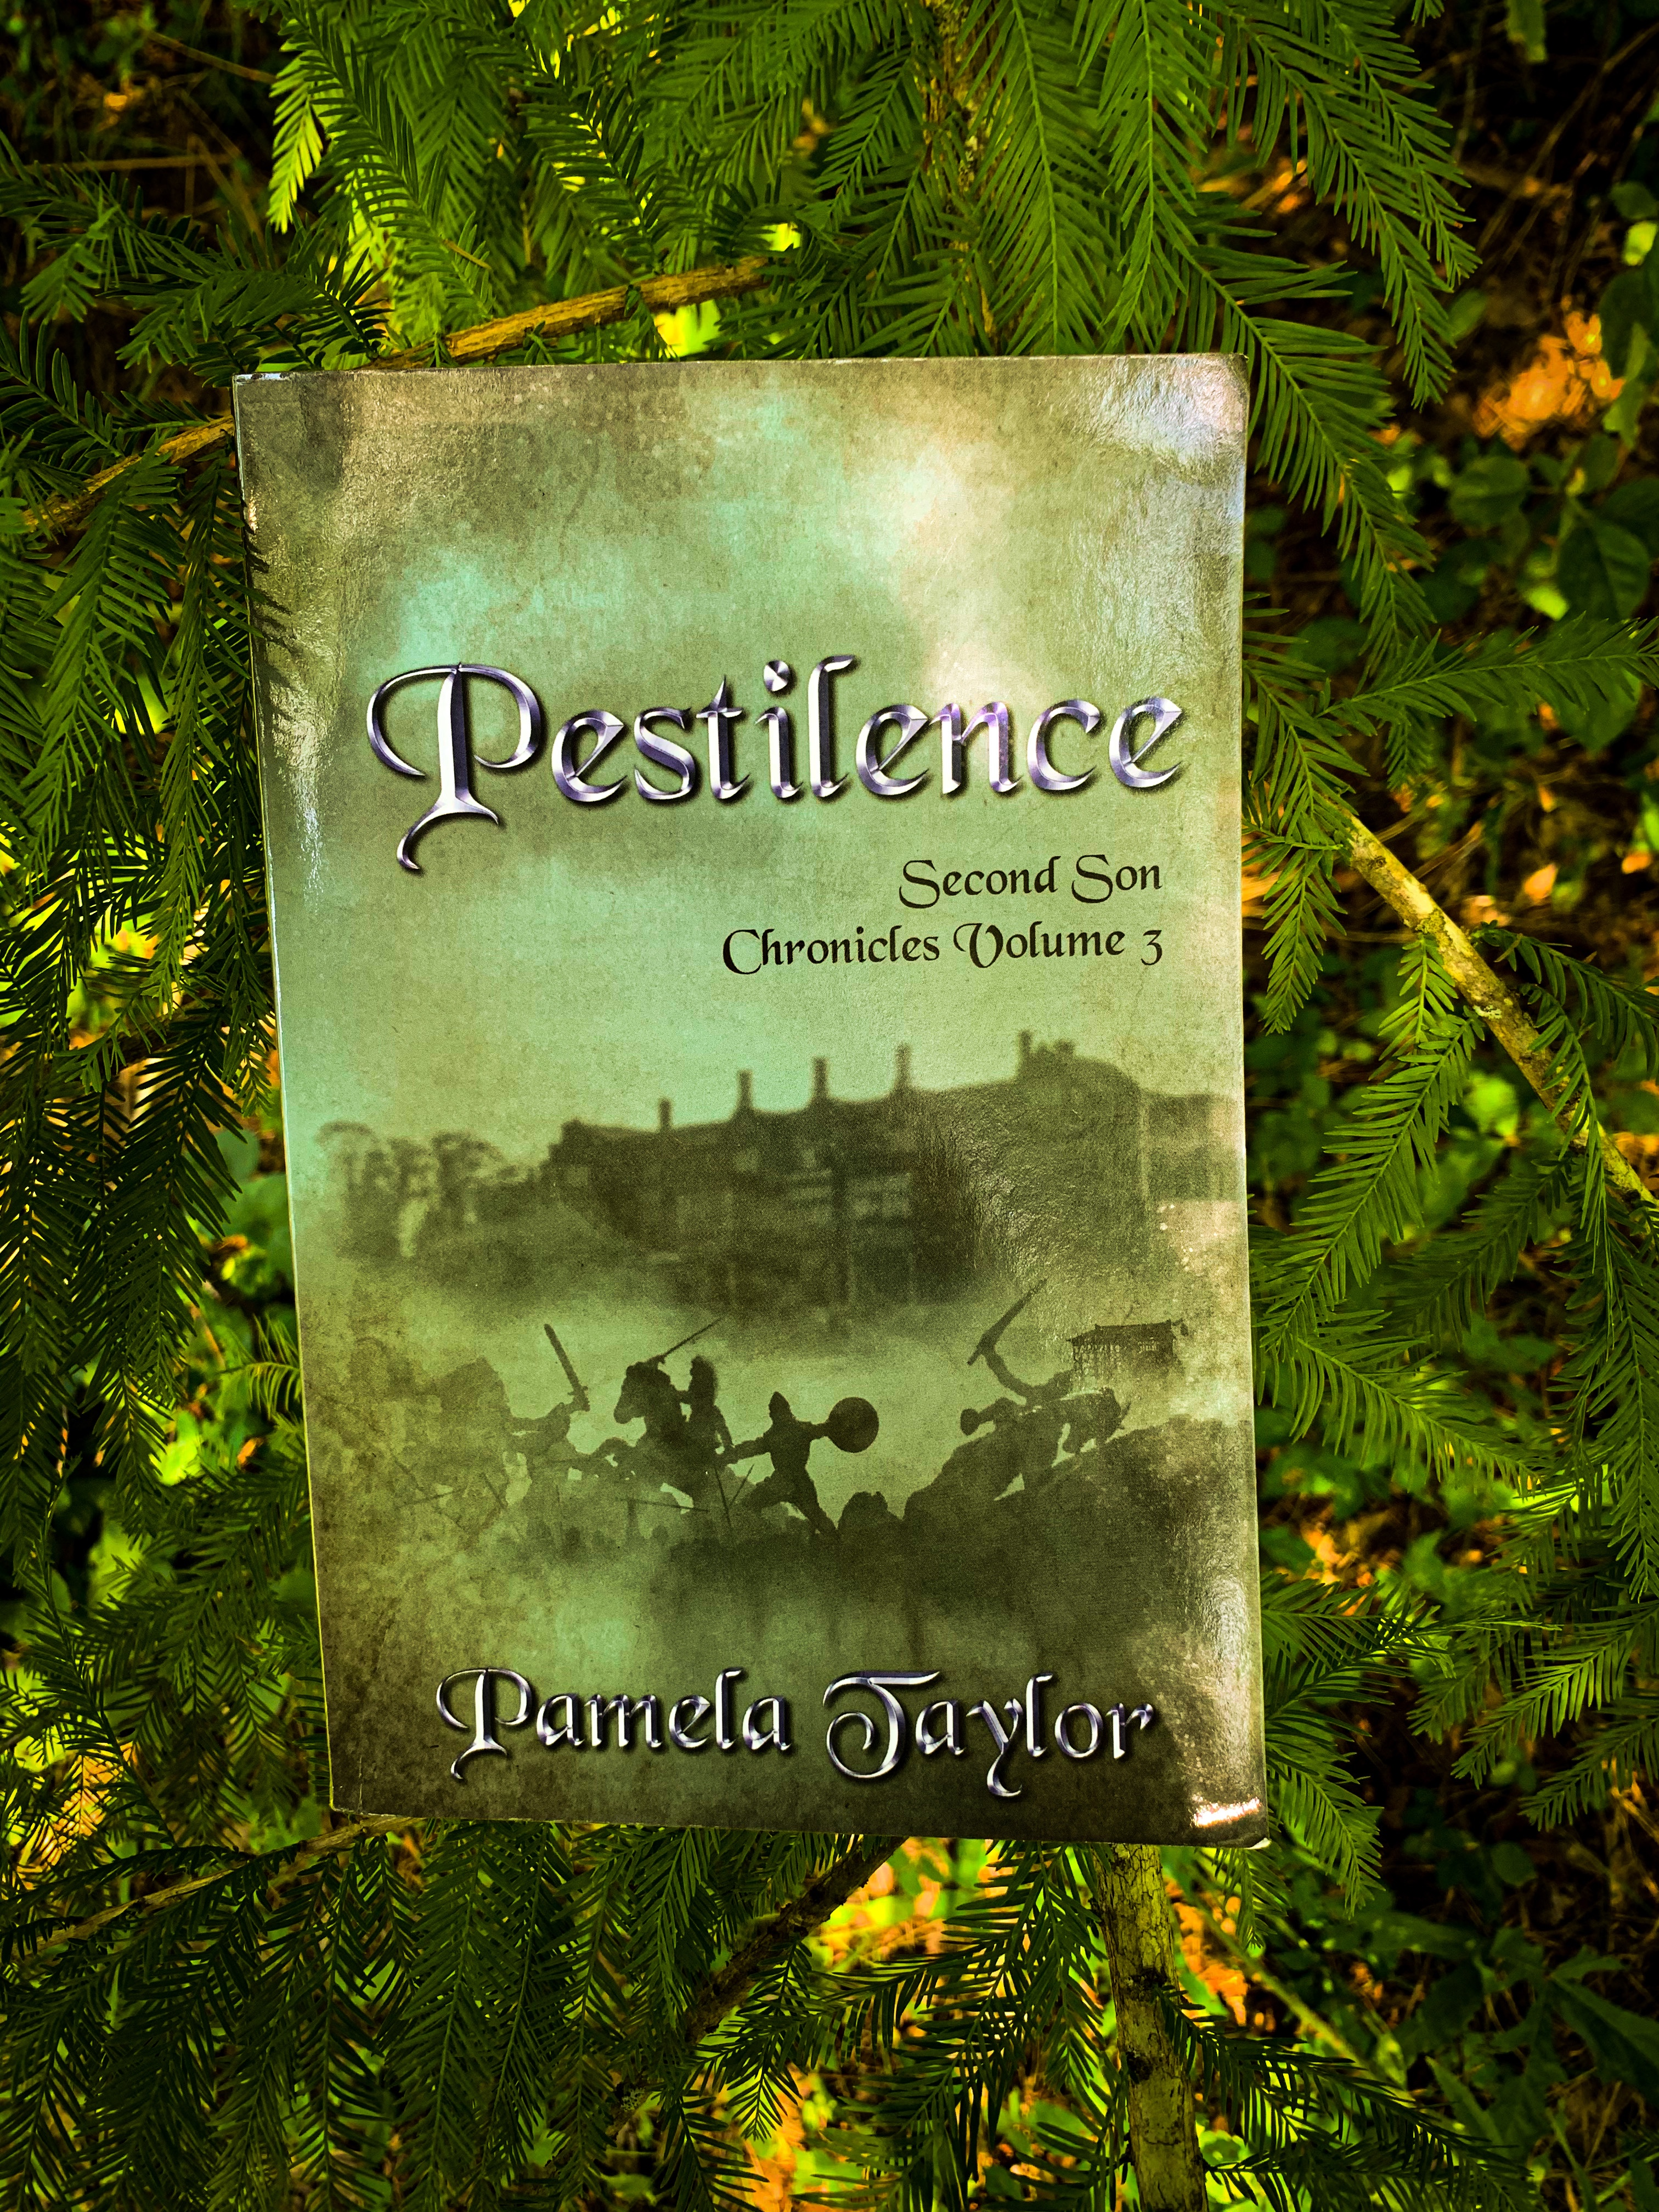 Button to purchase Pestilence.